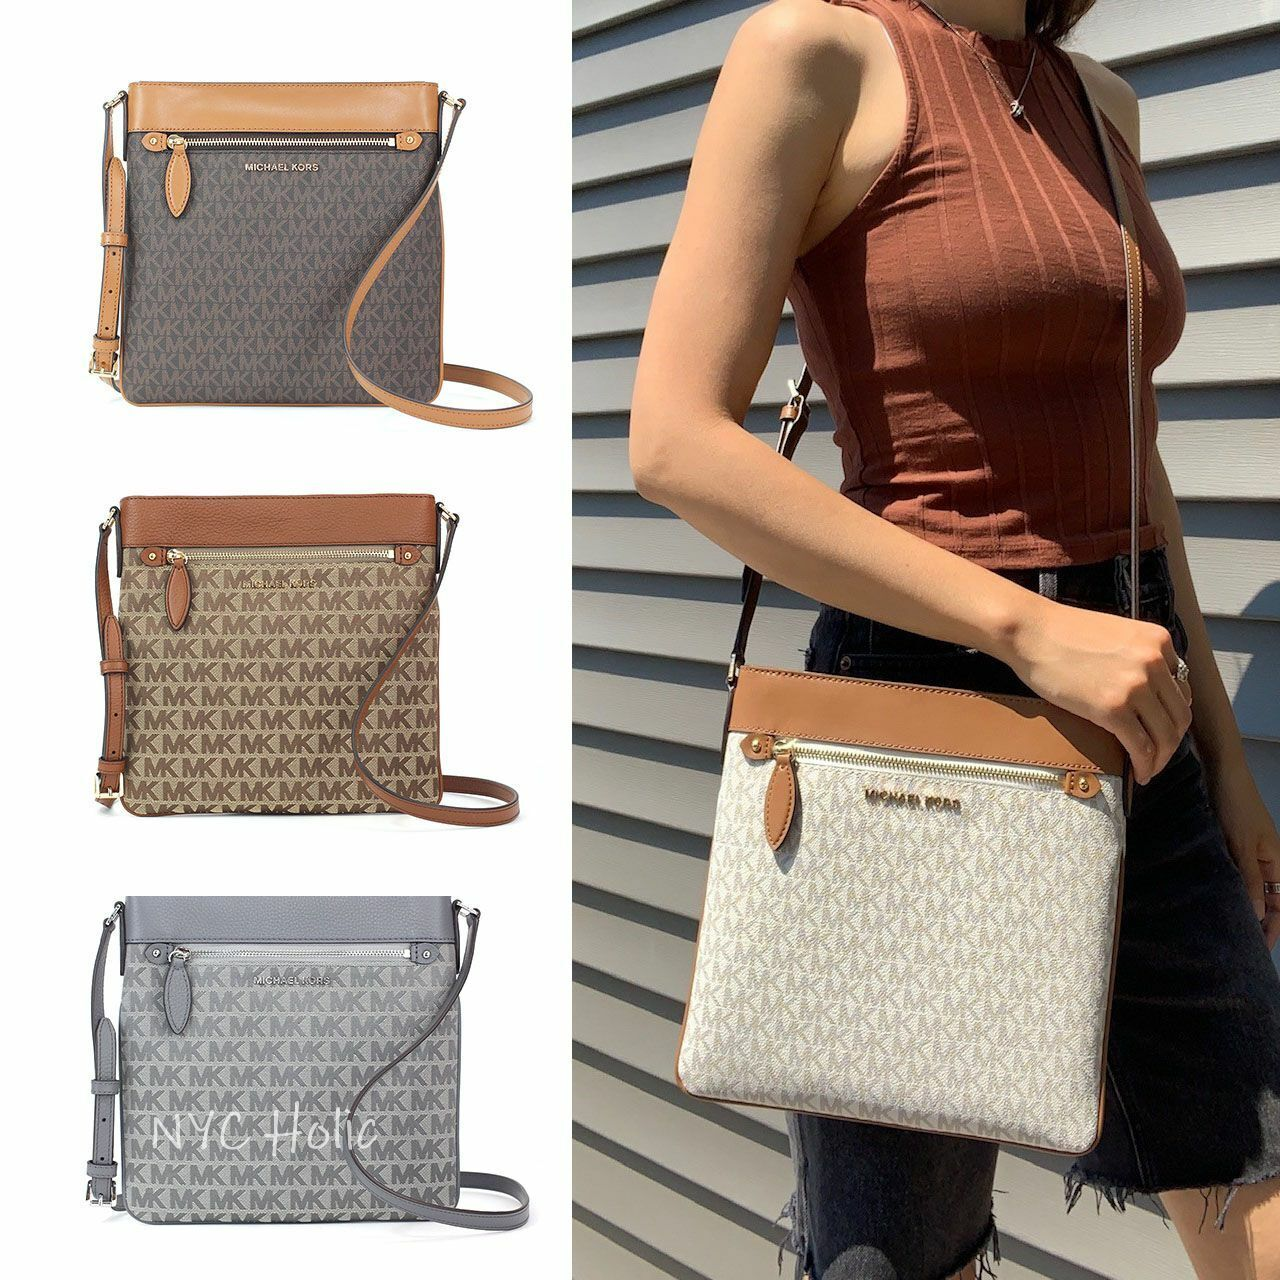 Details about Michael Kors Connie North South Crossbody New